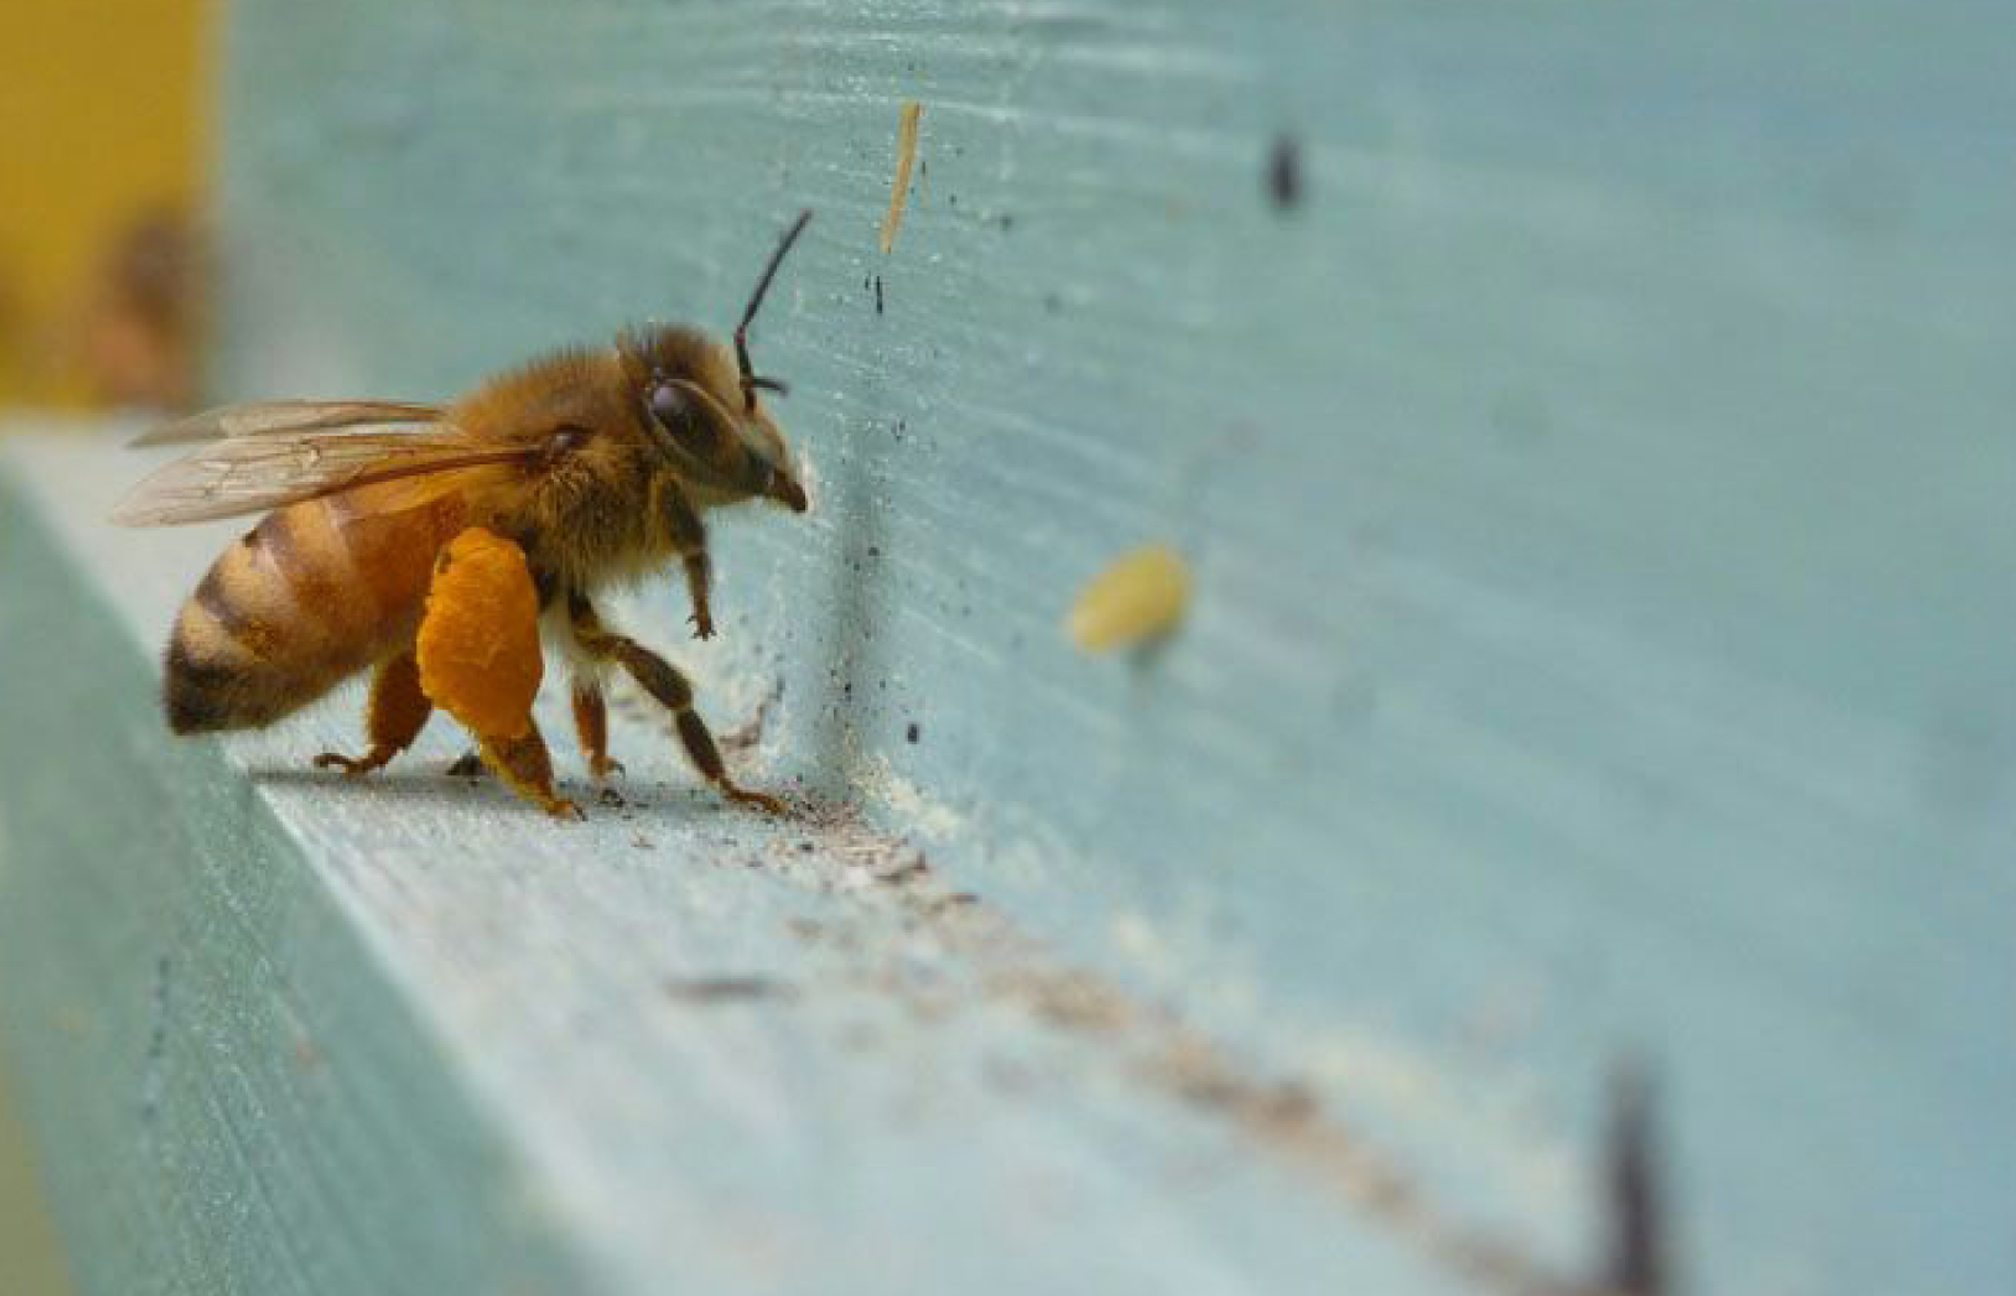 A Year in the Apiary: Queen Rearing